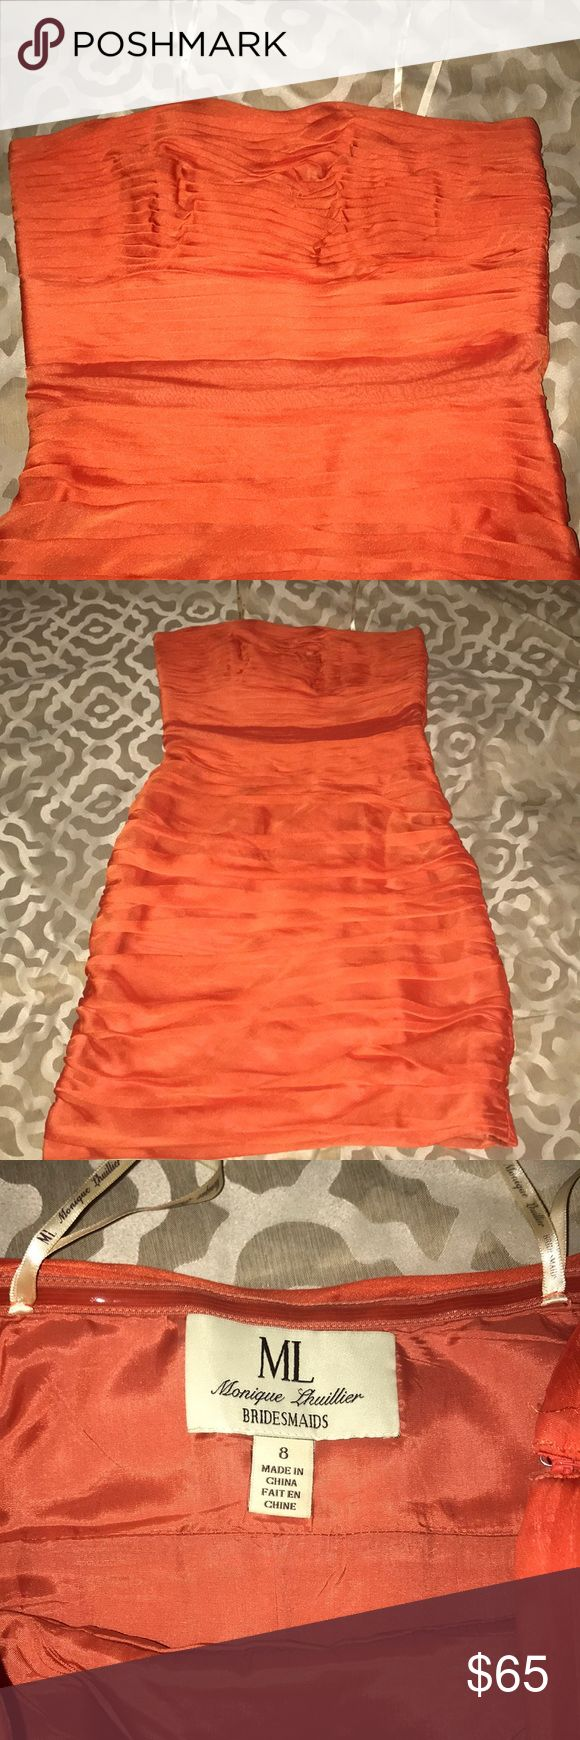 Bridesmaid Dress Super cute barely used knee length bridesmaid dress. Great for spring or summer weddings, or a pop of color during a fancy night out! Monique Lhuillier Bridesmaids Dresses Wedding